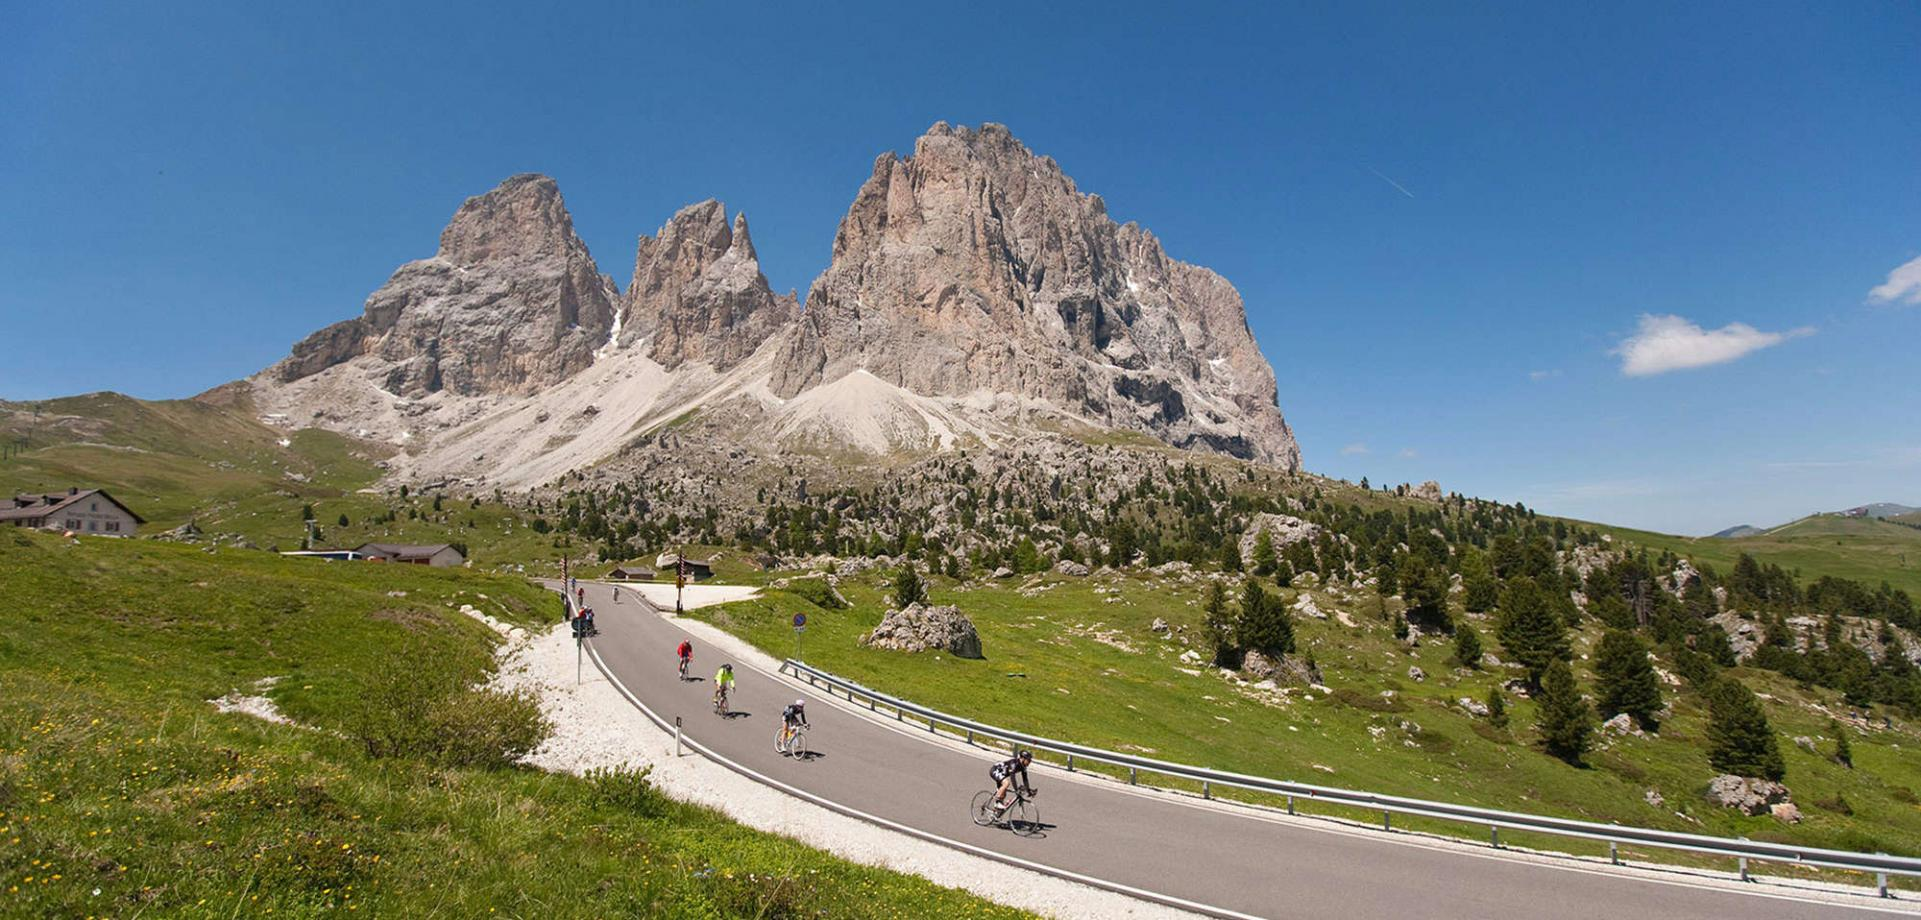 With the road bike on the Sellaronda in the Dolomites